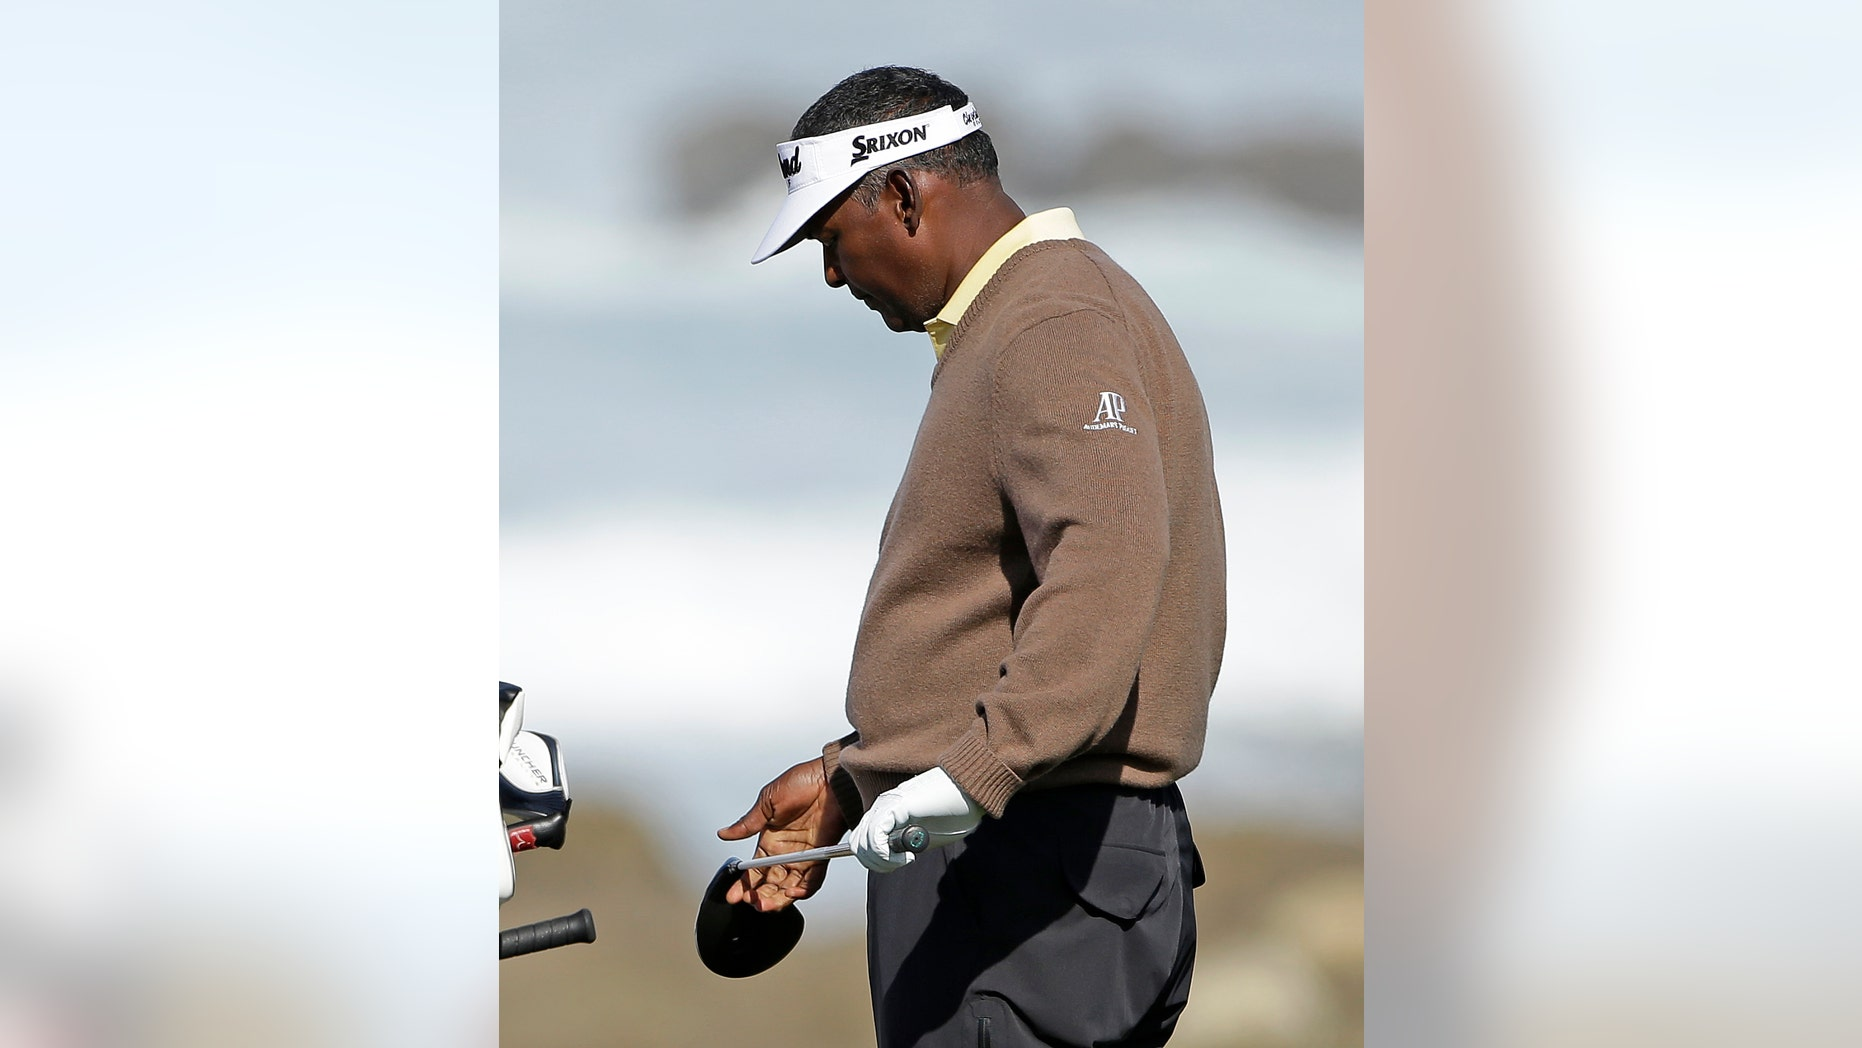 Vijay Singh, of Fiji, looks over his driver before hitting from the 13th tee of the Monterey Penisnula Country Club Shore Course during the second round of the AT&T Pebble Beach Pro-Am golf tournament on Friday, Feb. 8, 2013, in Pebble Beach, Calif. (AP Photo/Eric Risberg)